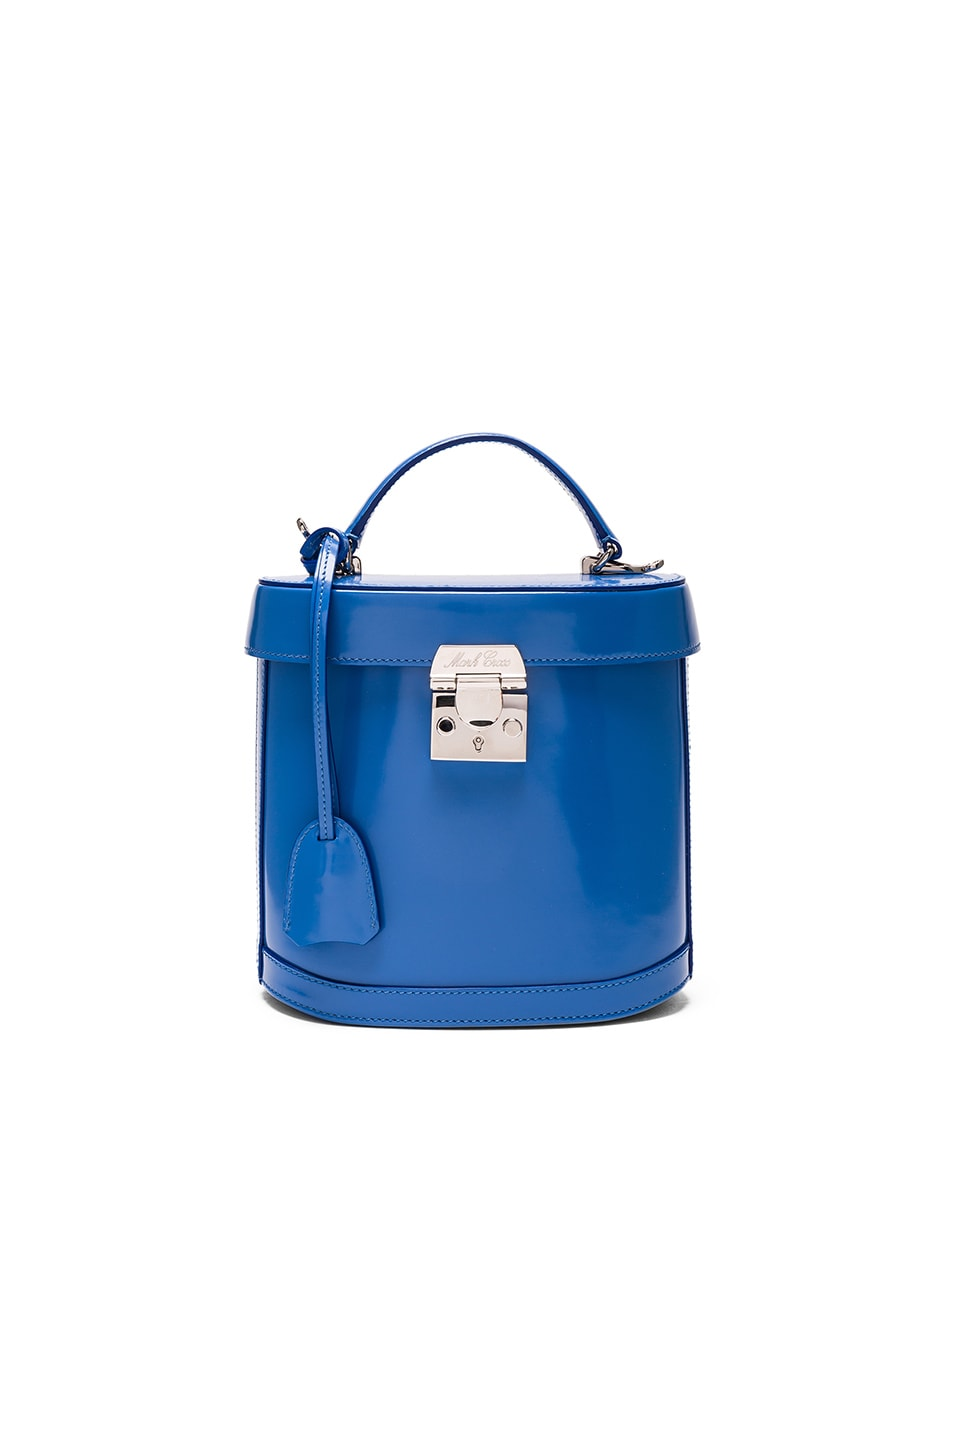 Image 1 of Mark Cross Benchley Bag in Brush Off Cornflower Blue